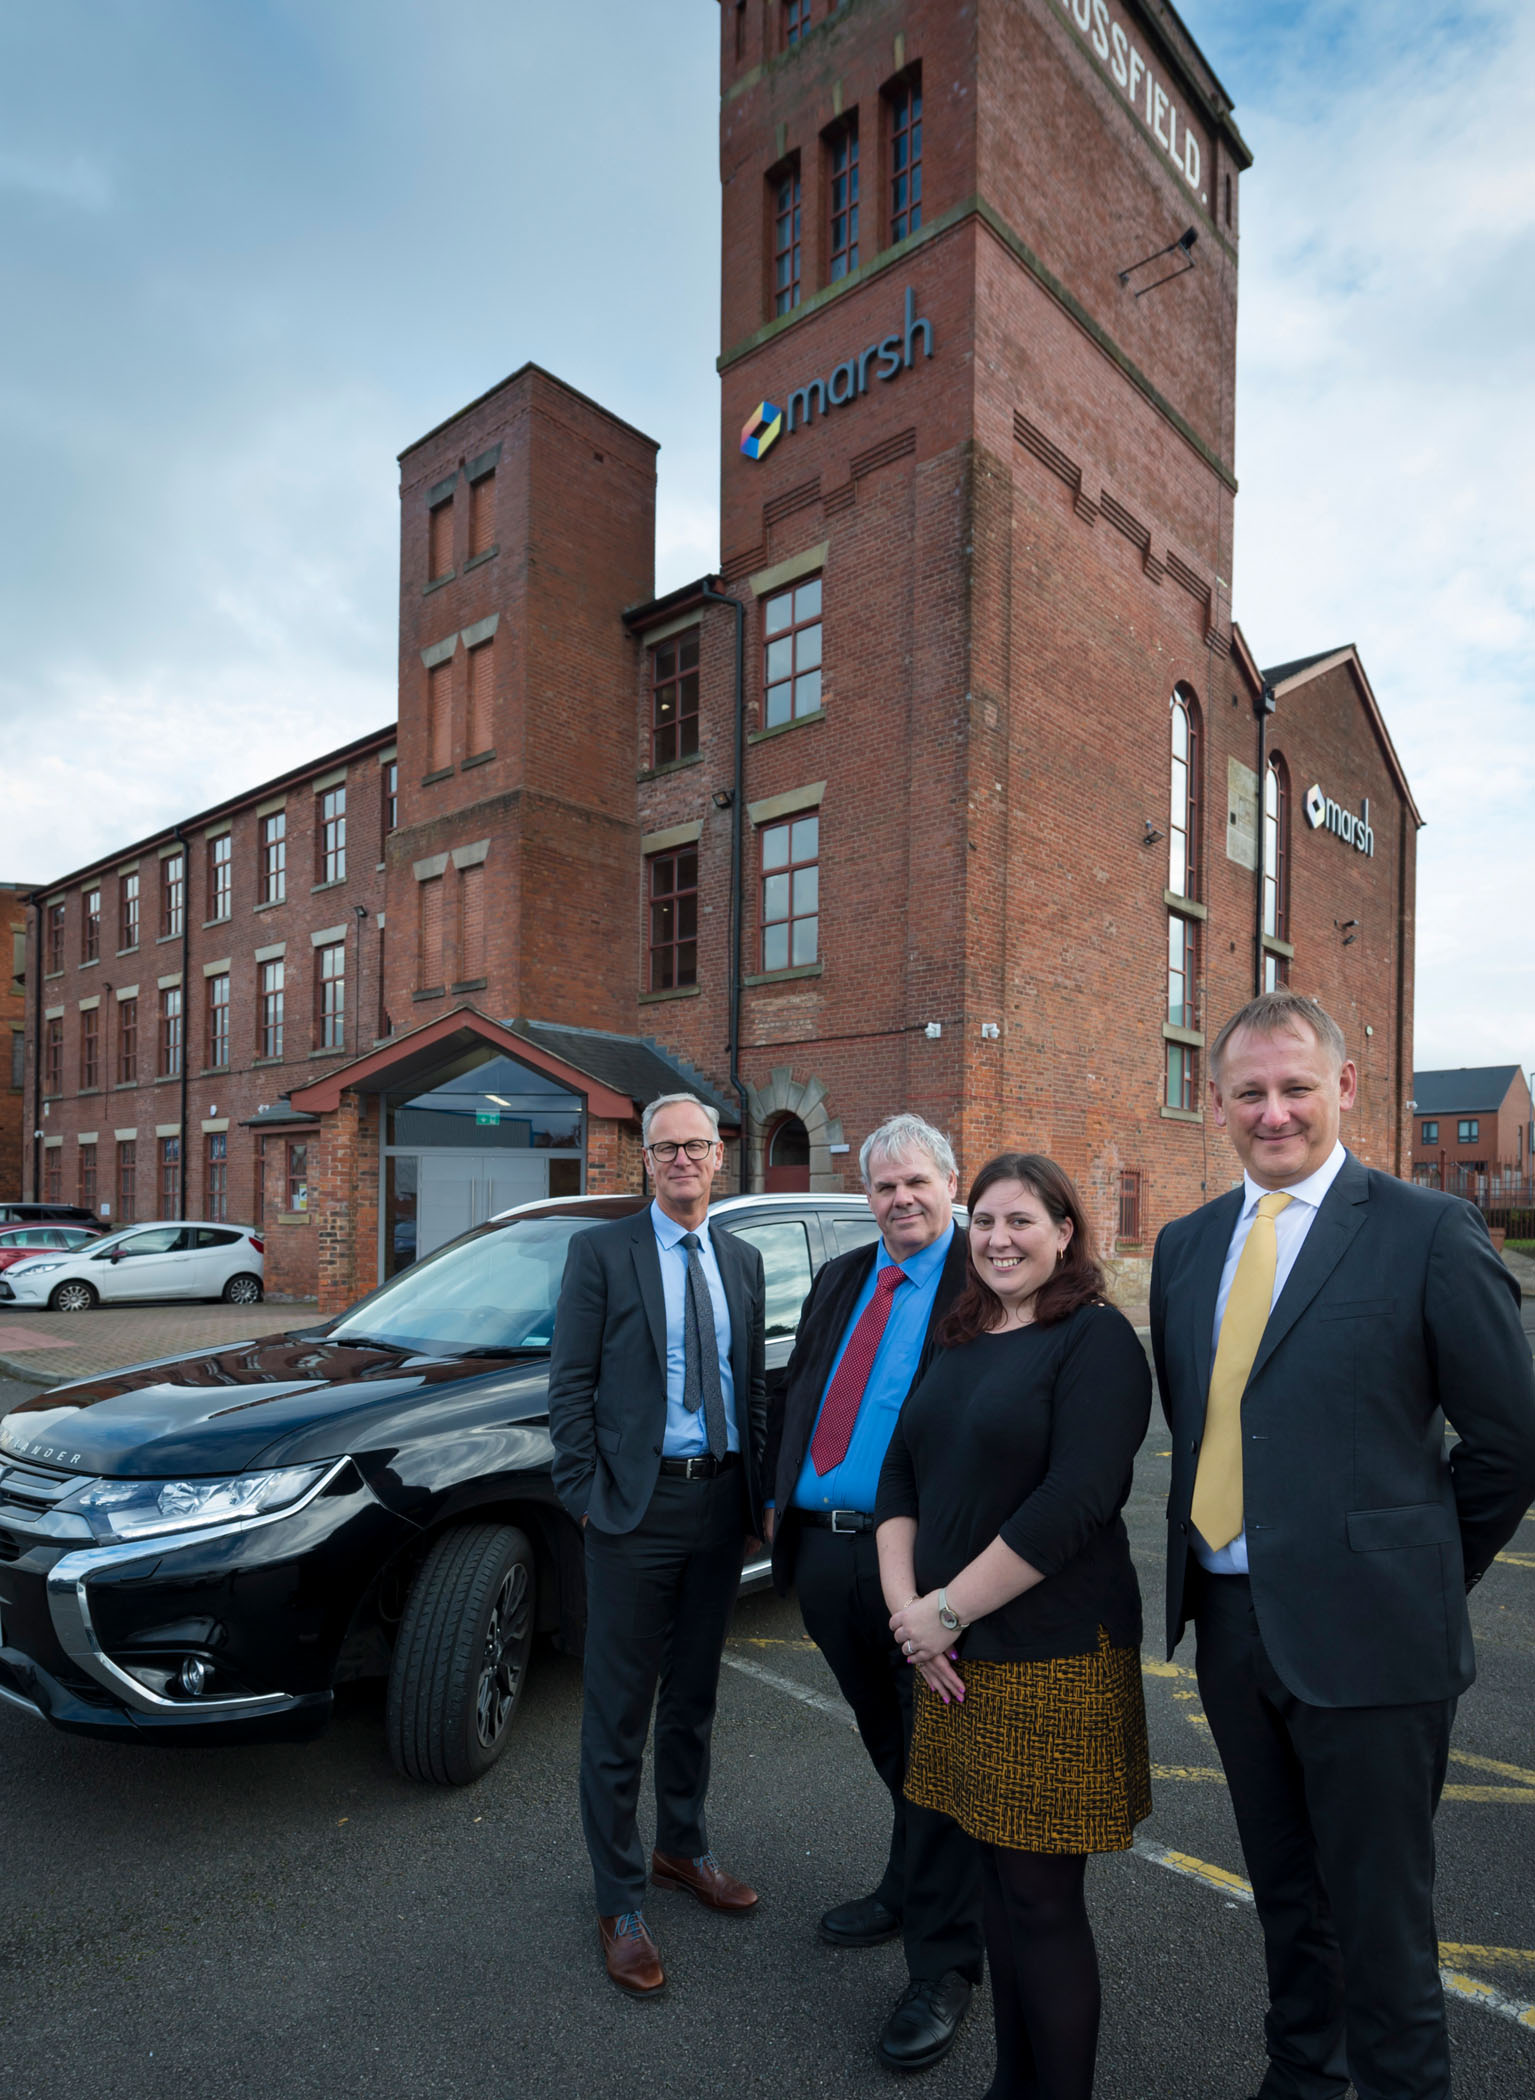 Image: Rochdale car finance company moves up a gear with ambitious expansion